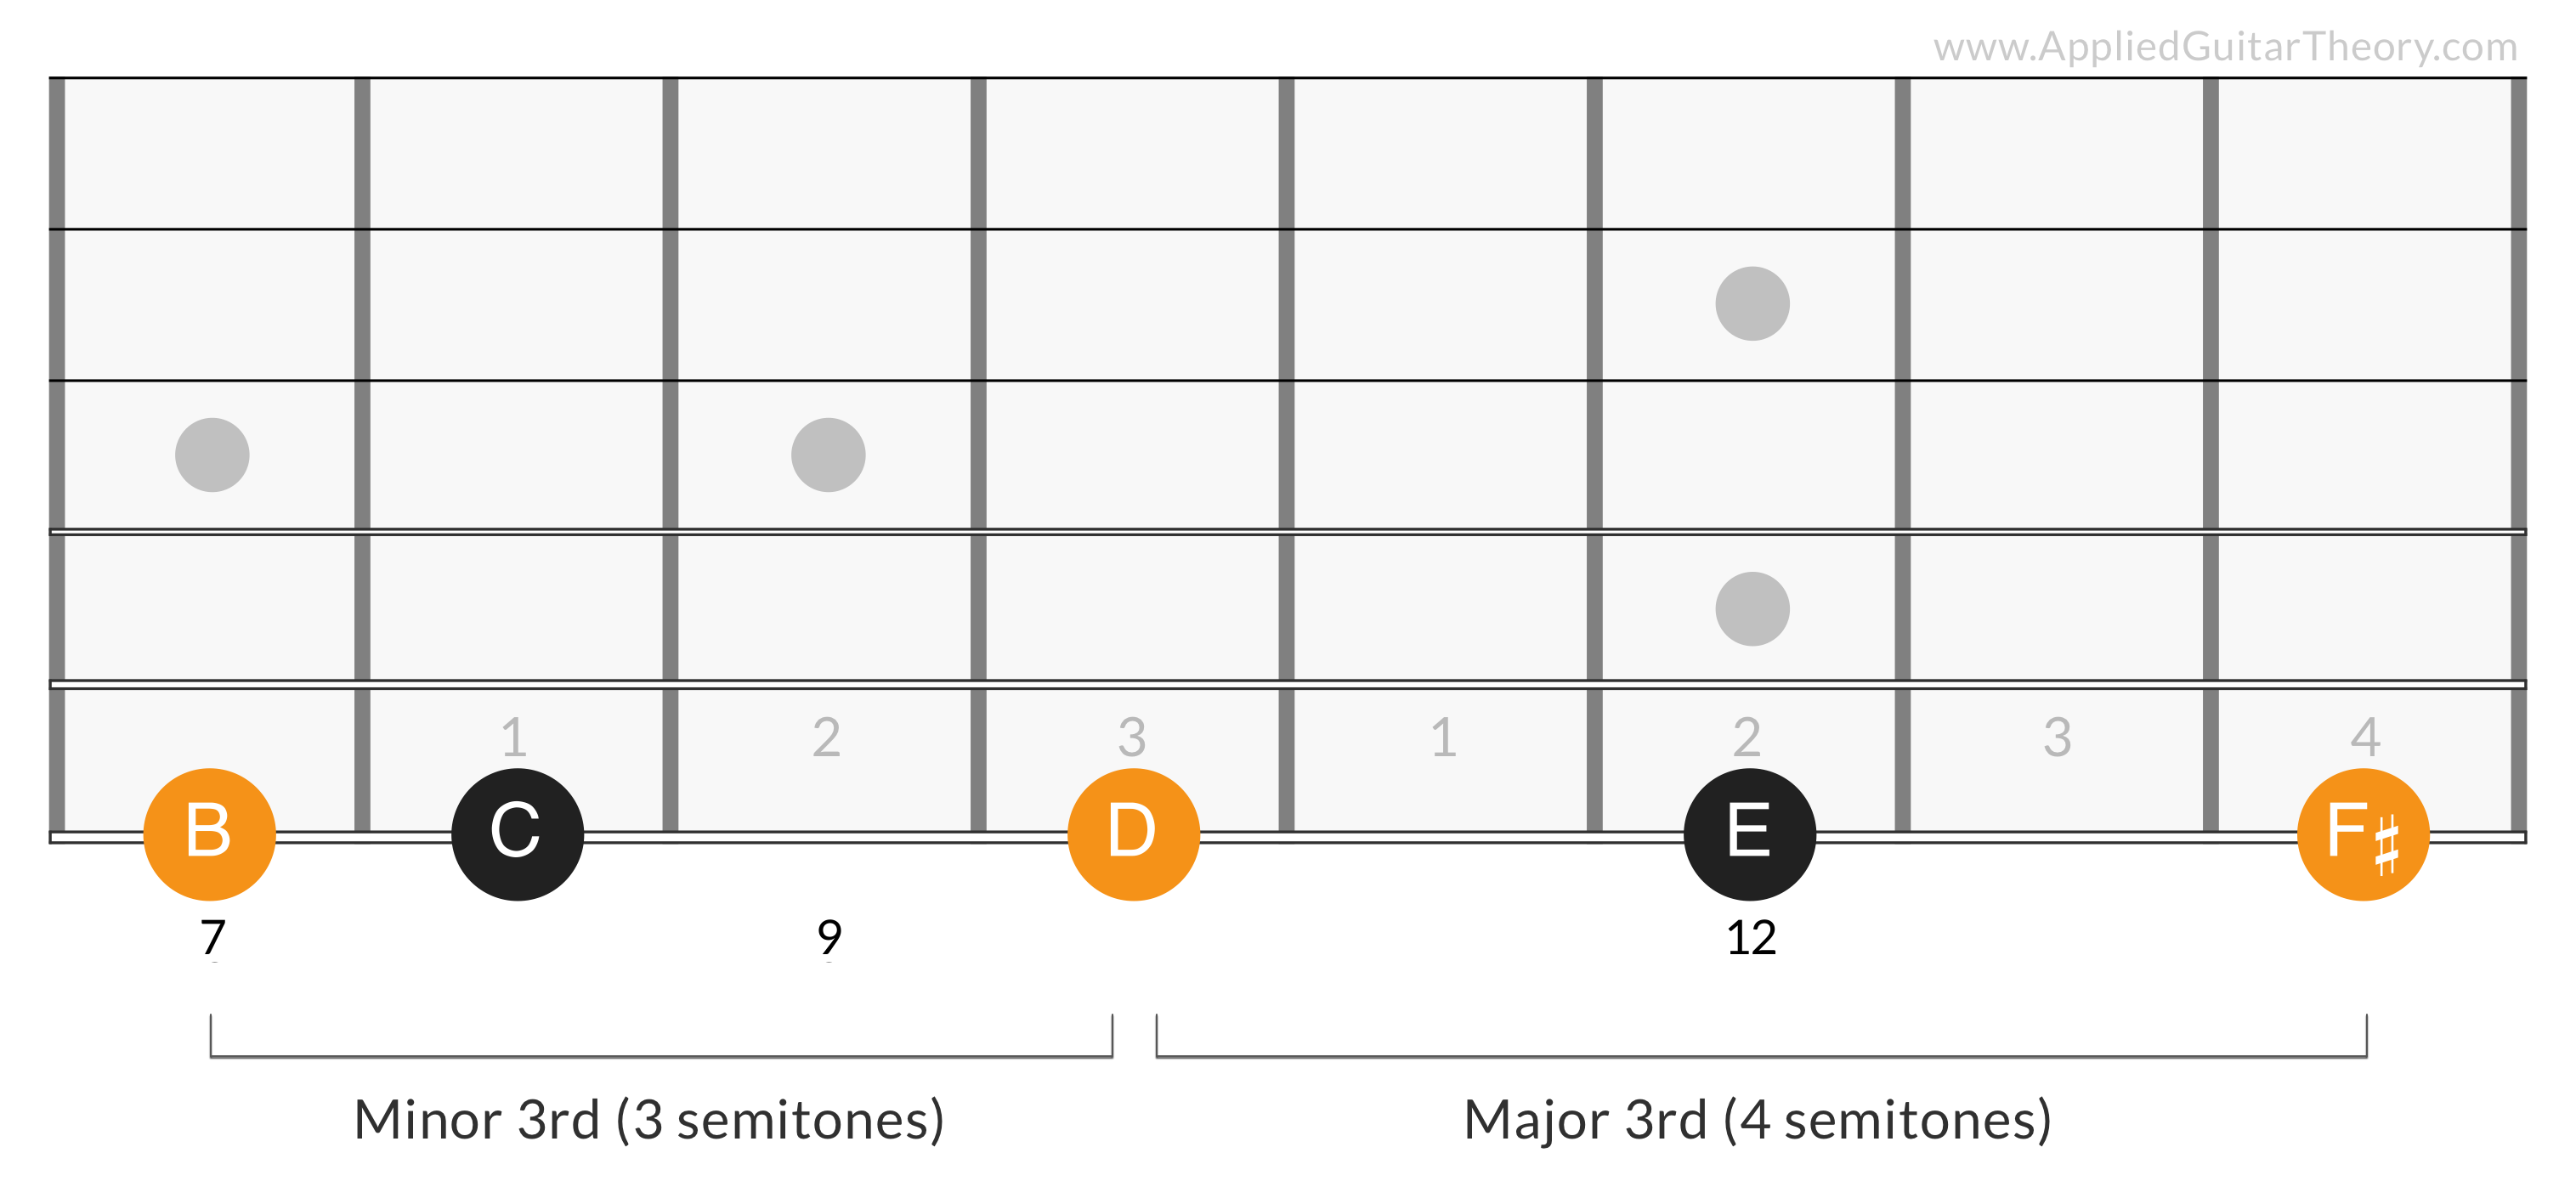 G Major Triad 3rd Degree - B D F#